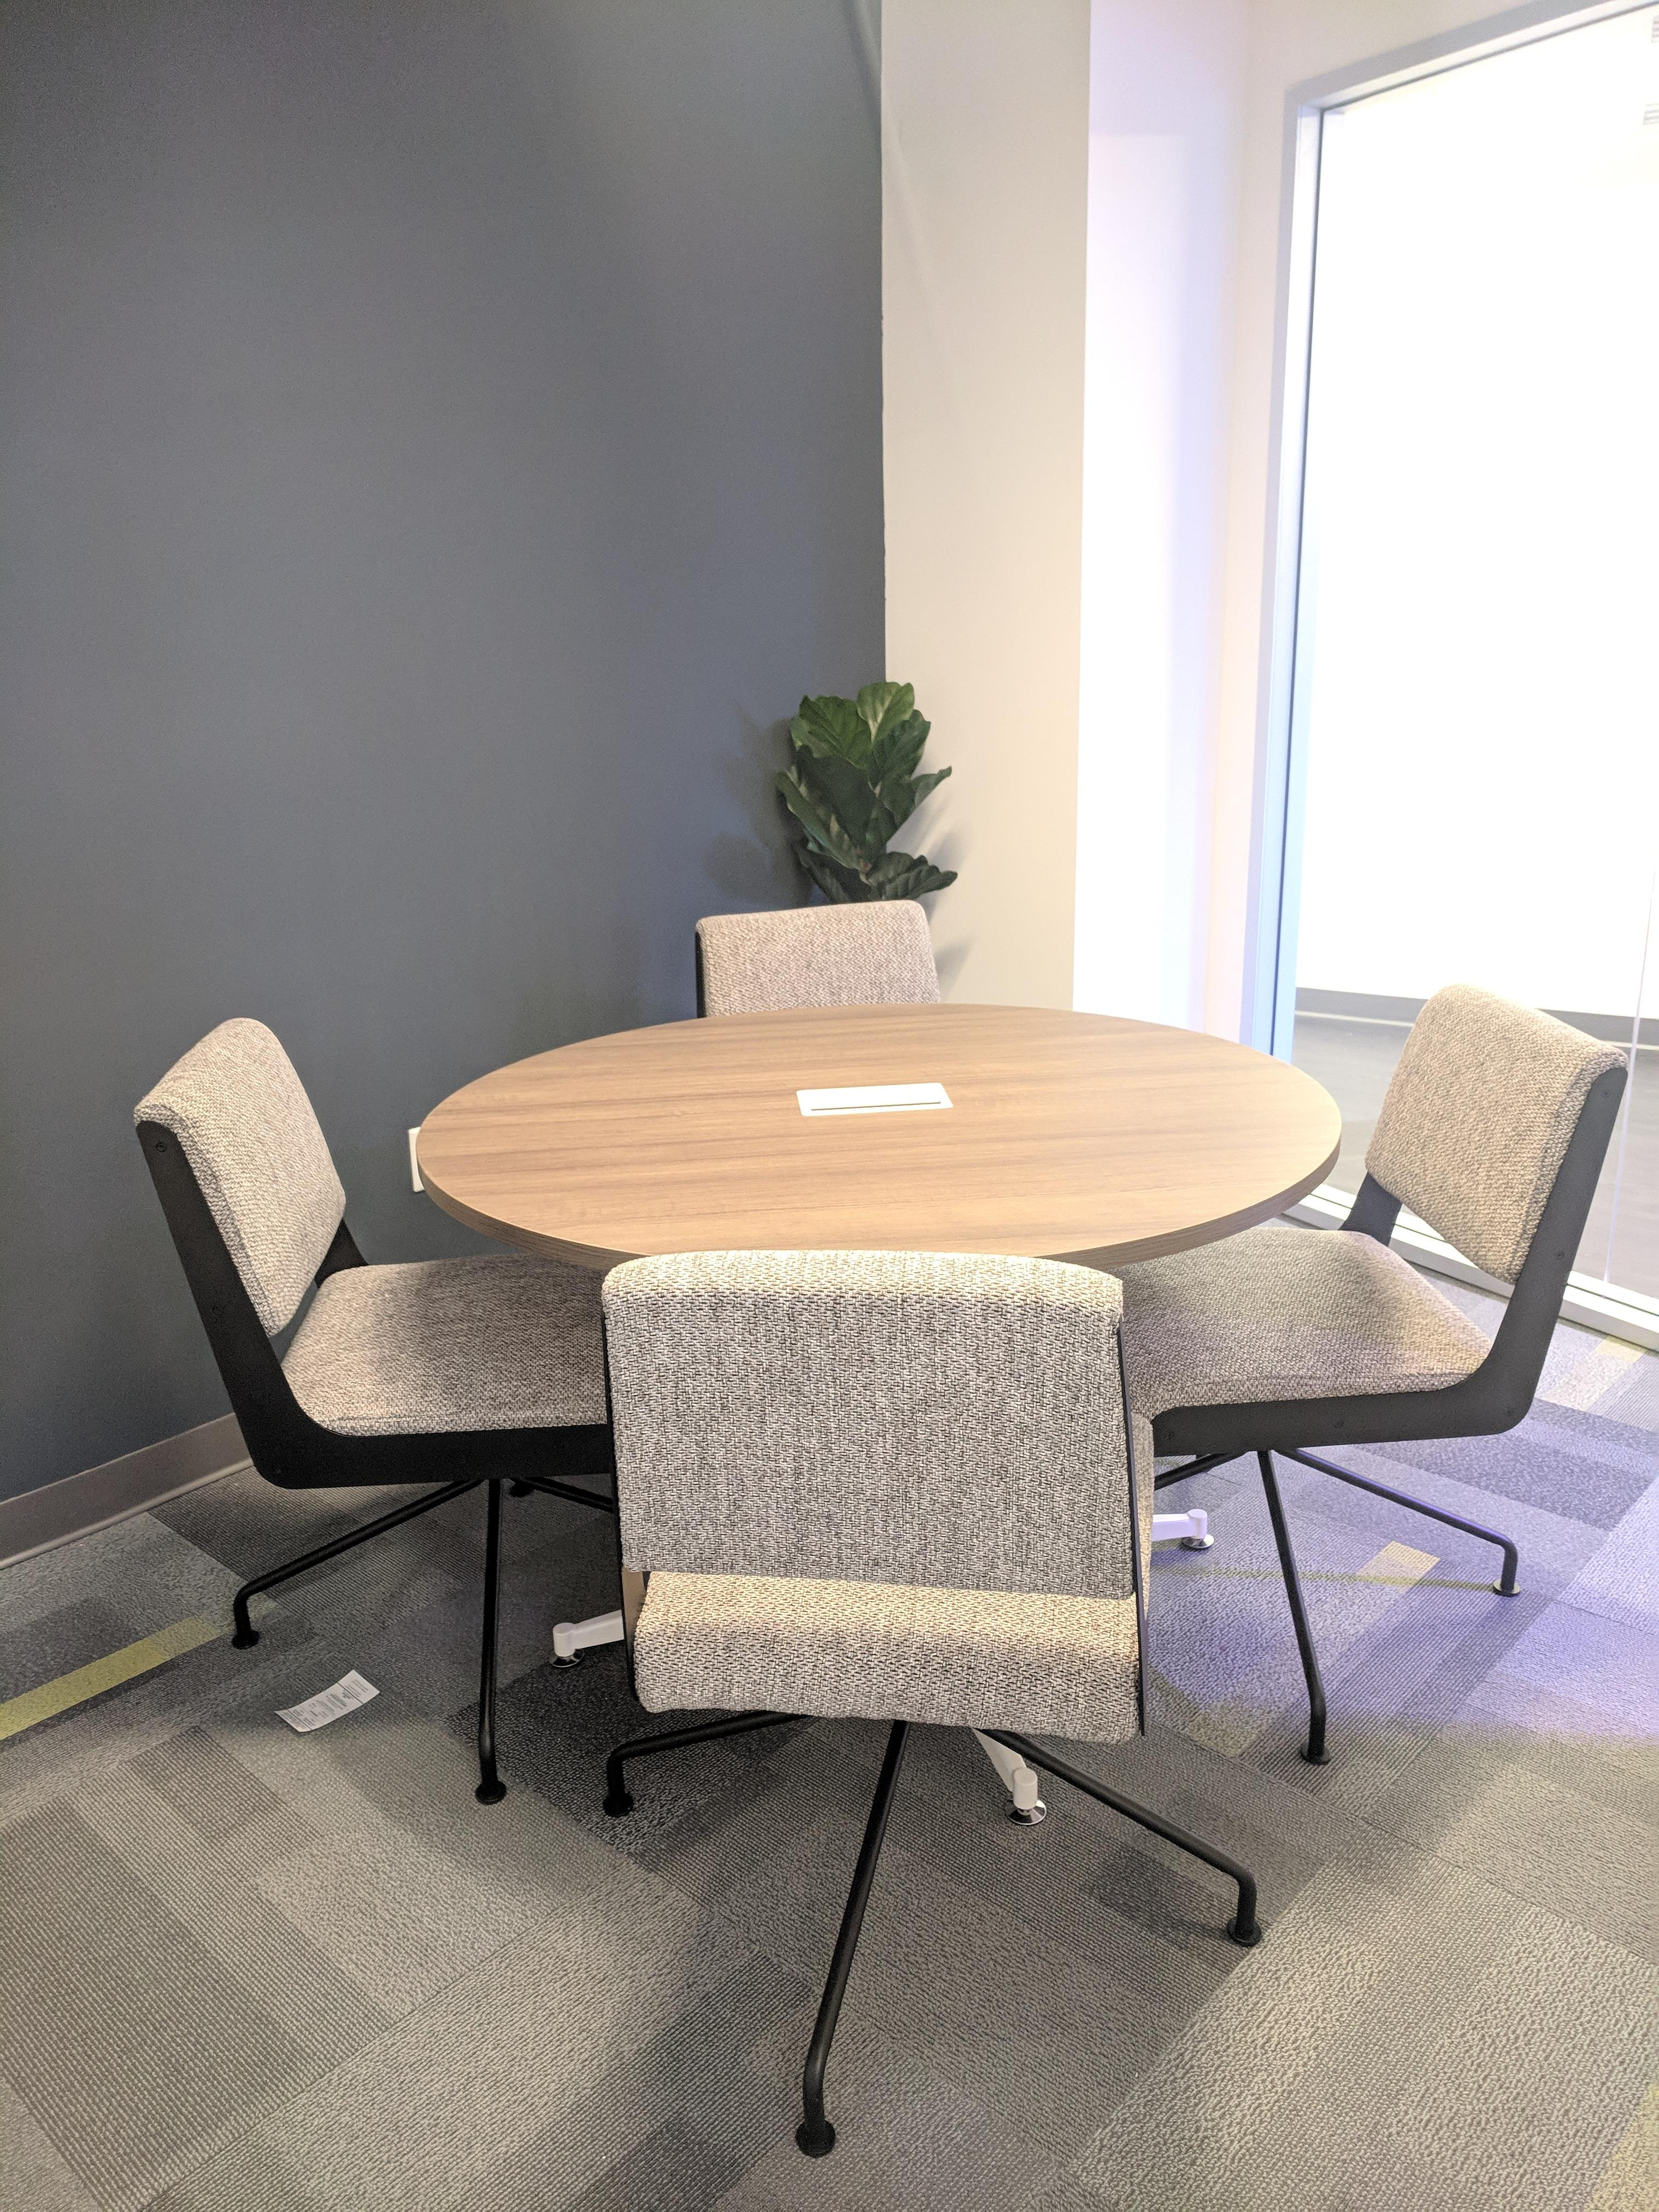 IgnitedSpaces-East St. - Small Conference Room